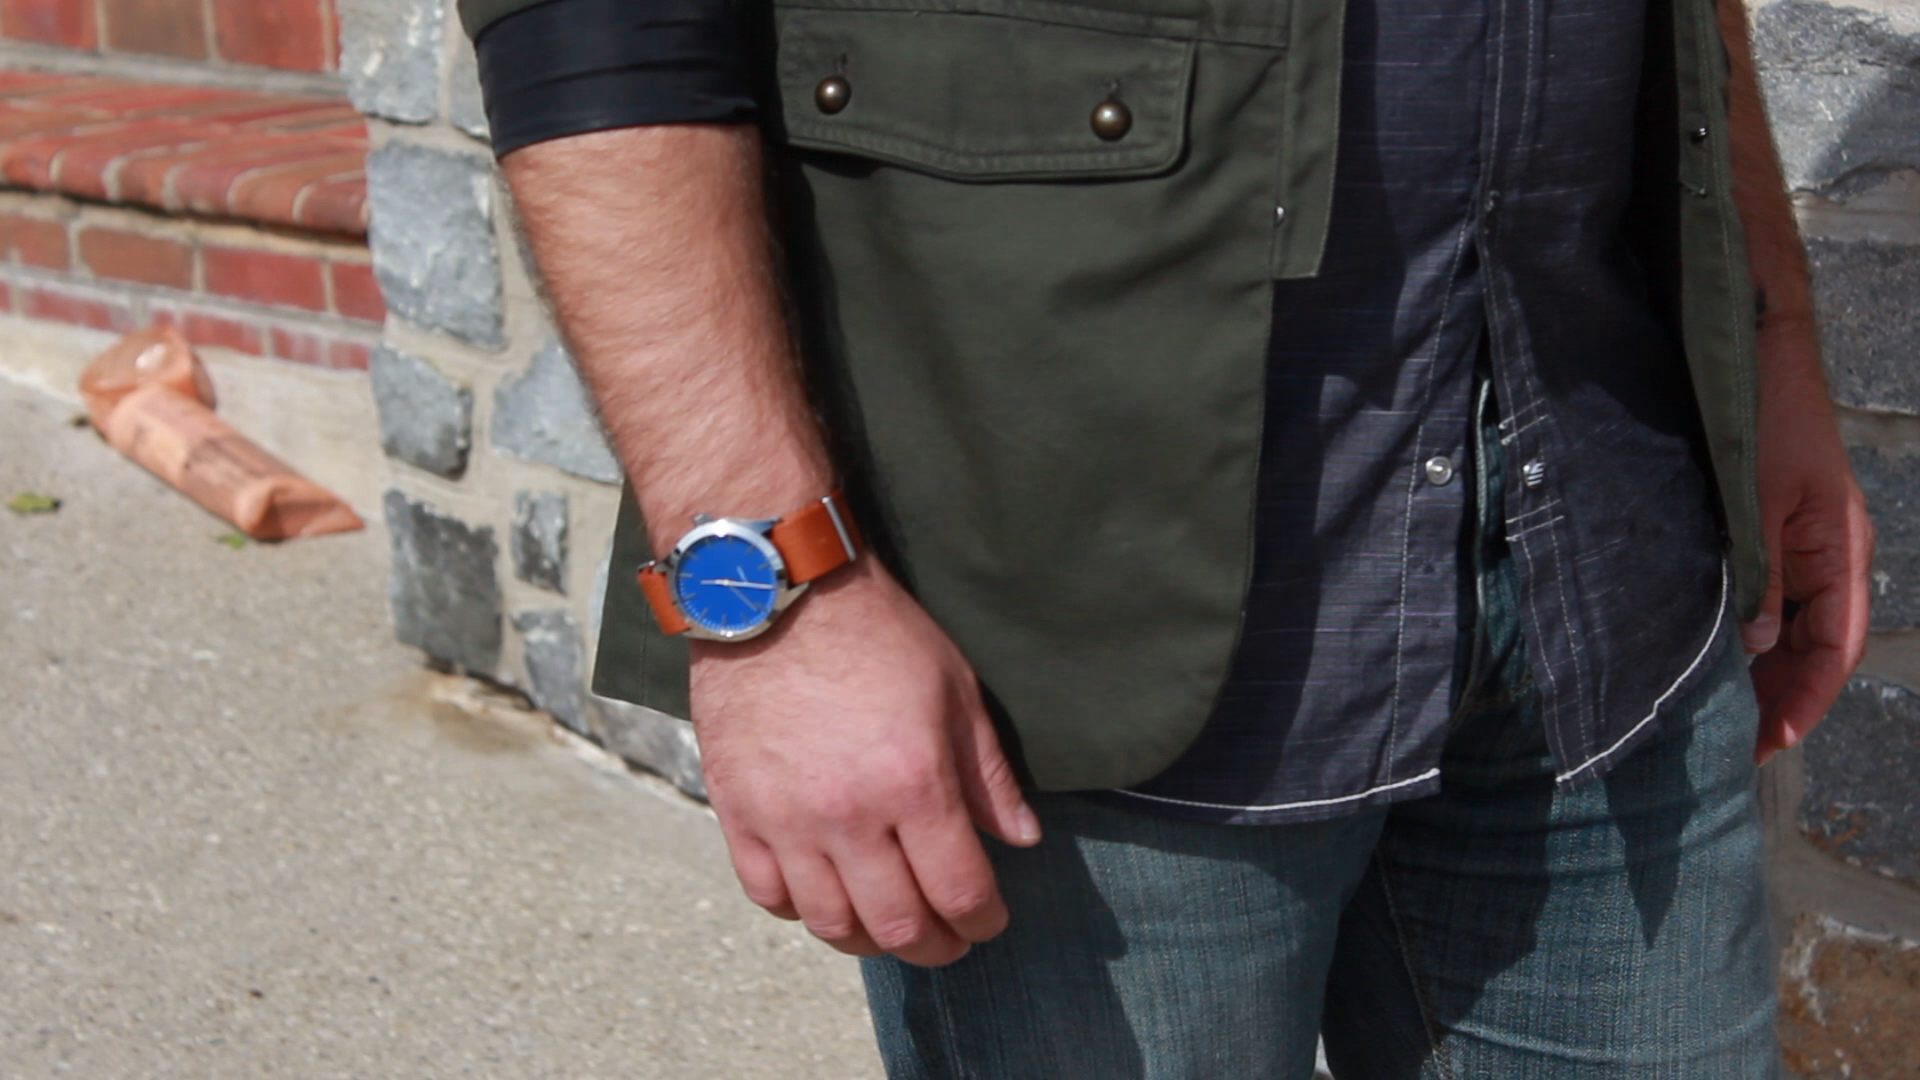 Assemble Your Own Wrist Watch